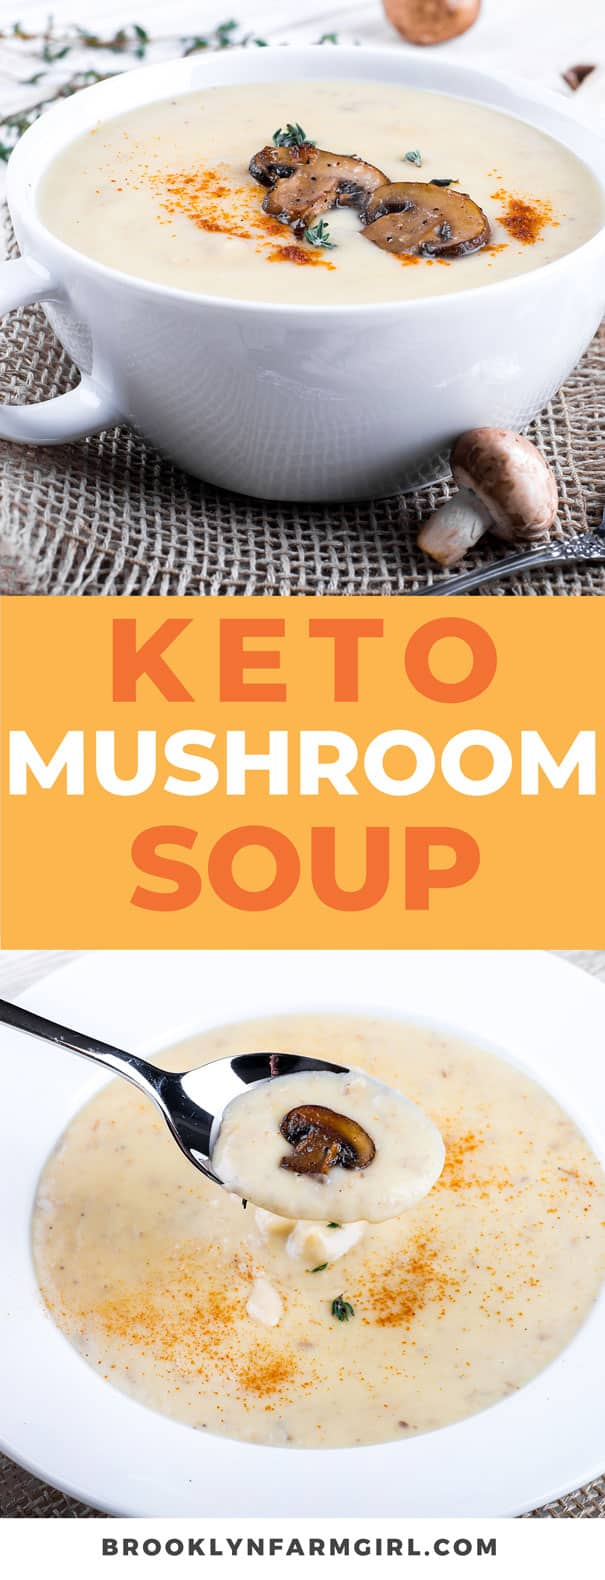 Keto Cream of Mushroom Soup recipe.This easy to make low carb recipe uses fresh mushrooms, heavy cream and cream cheese to make a delicious creamy bowl of soup!